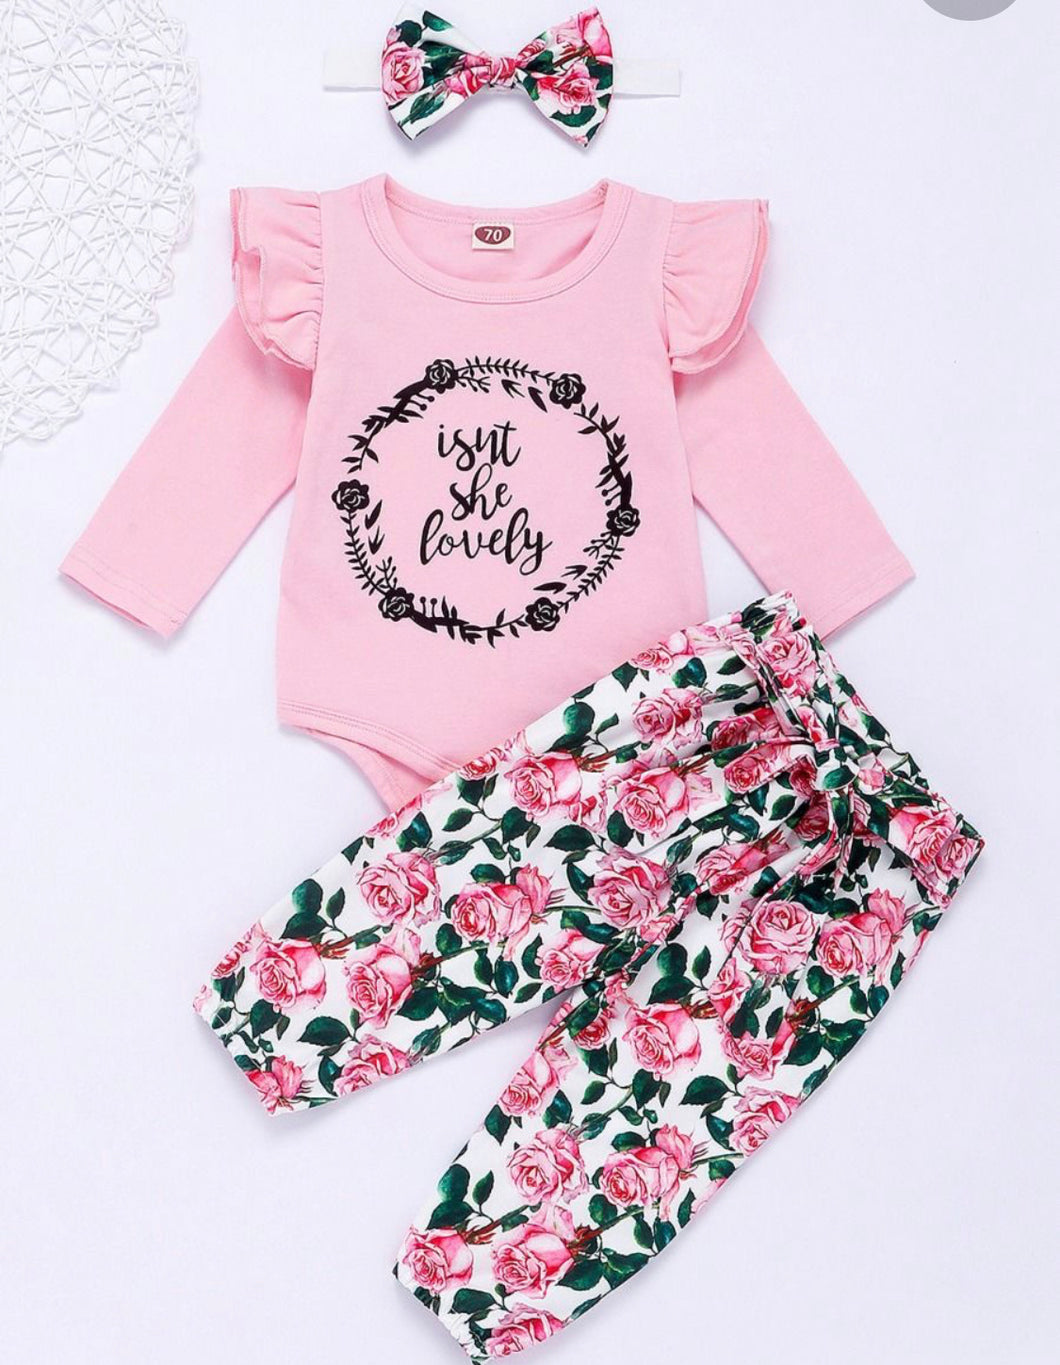 """Isn't she lovely"" three piece set- pink"